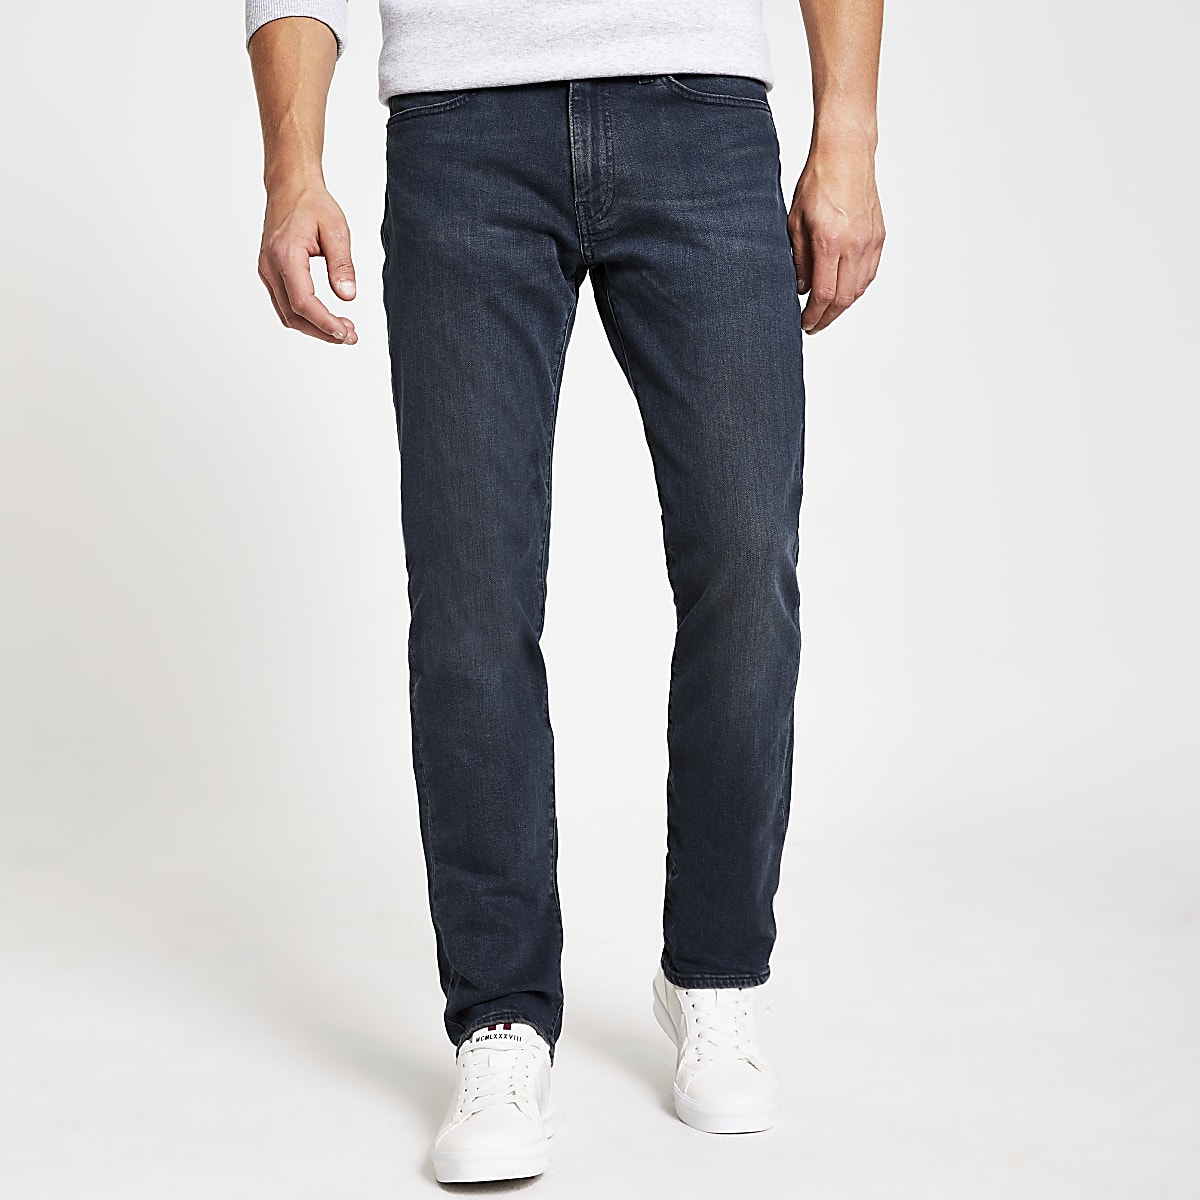 Levi's 511 – Ivy – Blaue Slim Fit Jeans